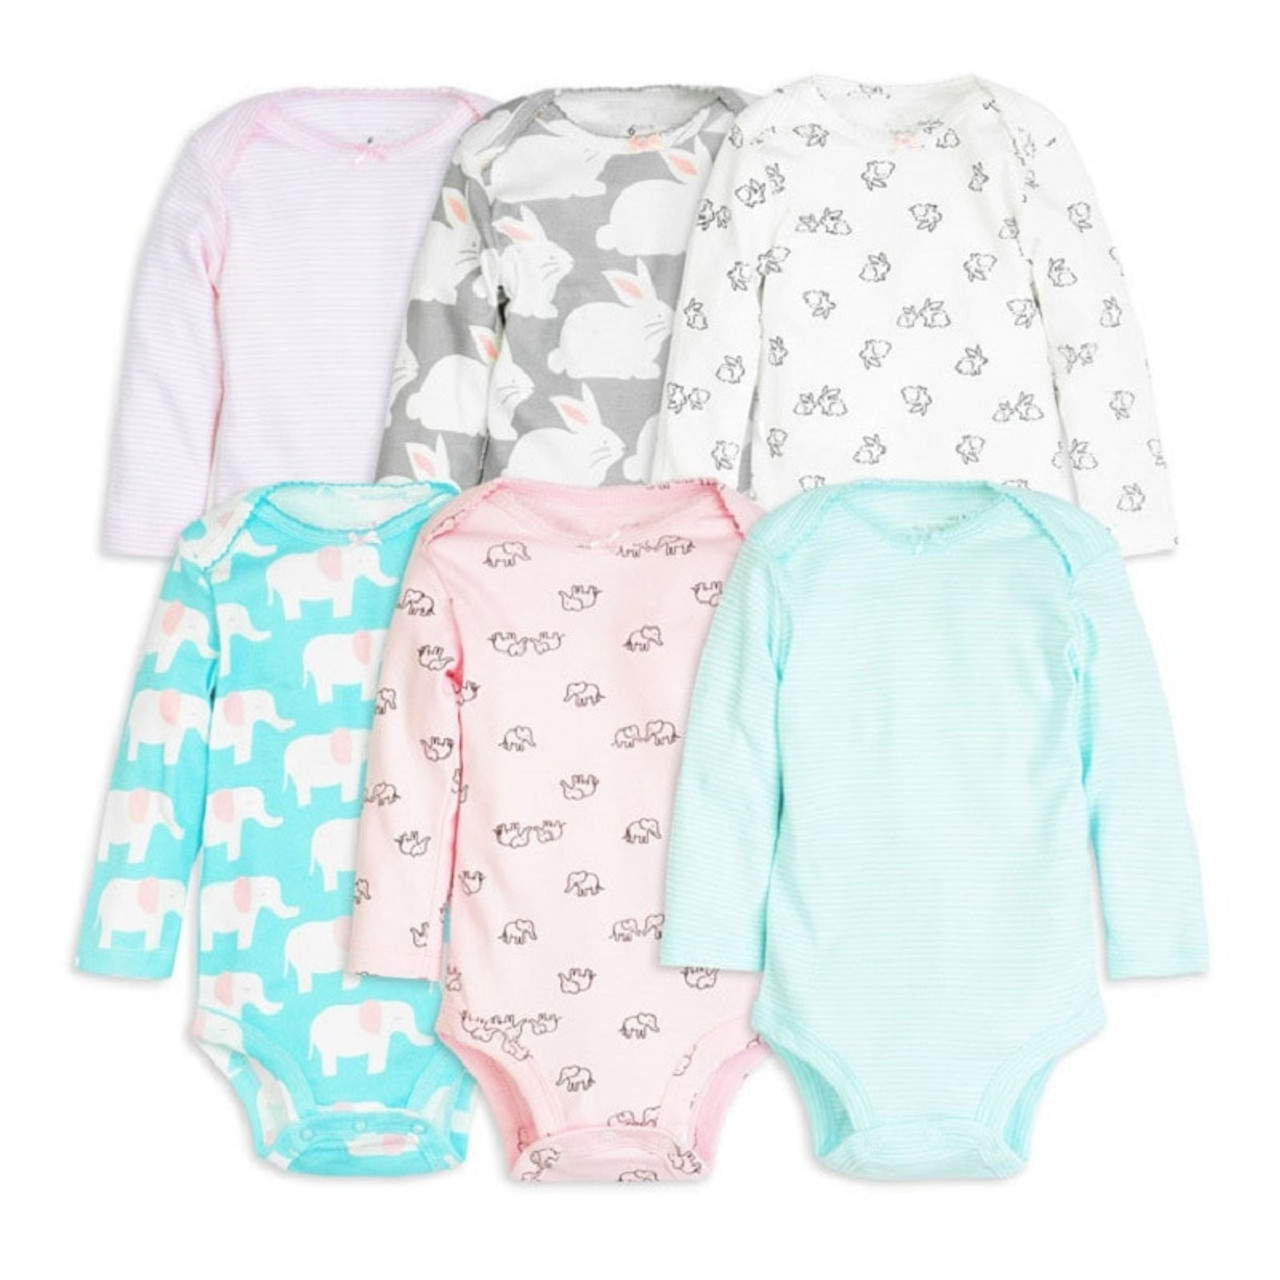 e1aad1edcb09 6pcs baby girl rompers 2018 newborn baby clothes long sleeve clothing  romper baby jumpsuit cute rabbit ...